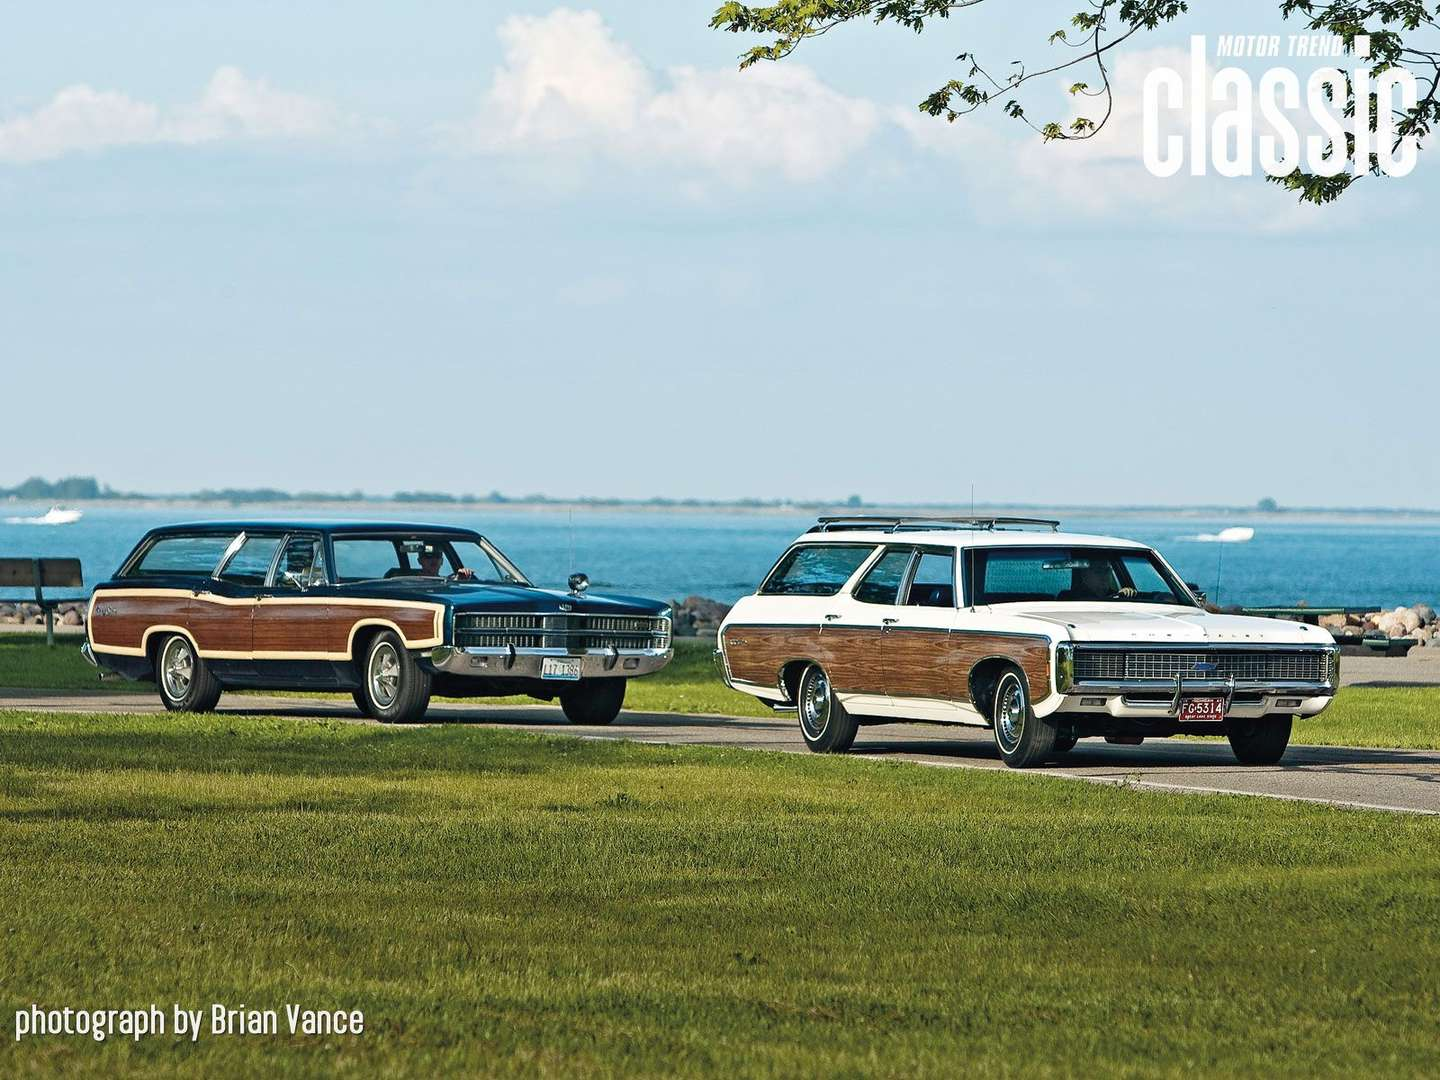 Ford Country Squire #8067854